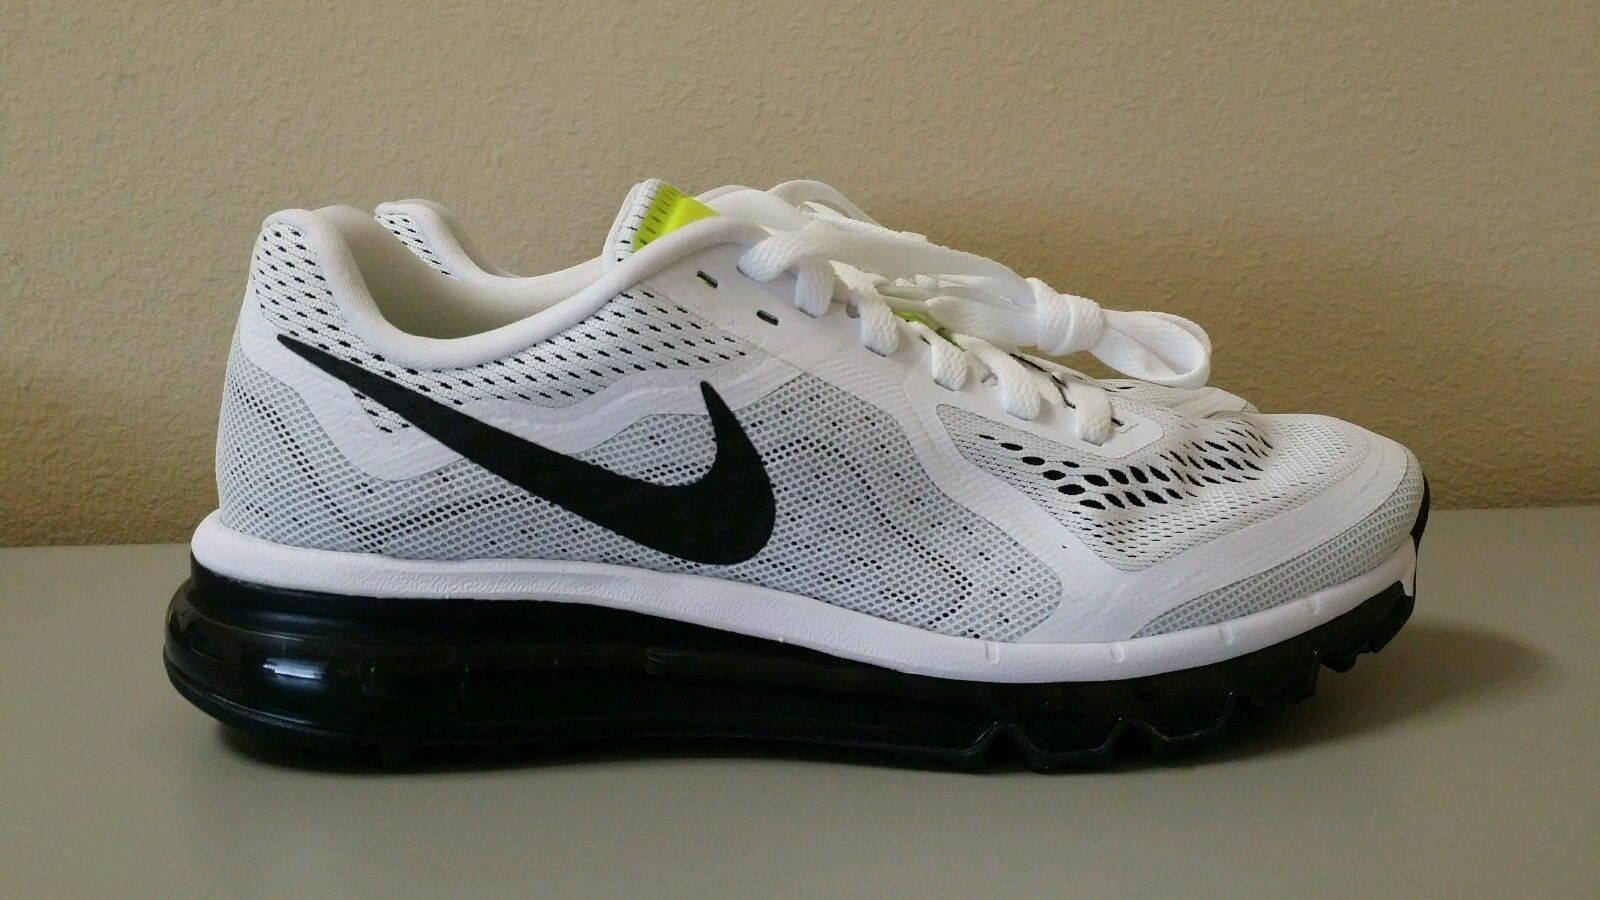 Nike Air Max 2018 Running Shoes White/Black/Volt Women Sz 10